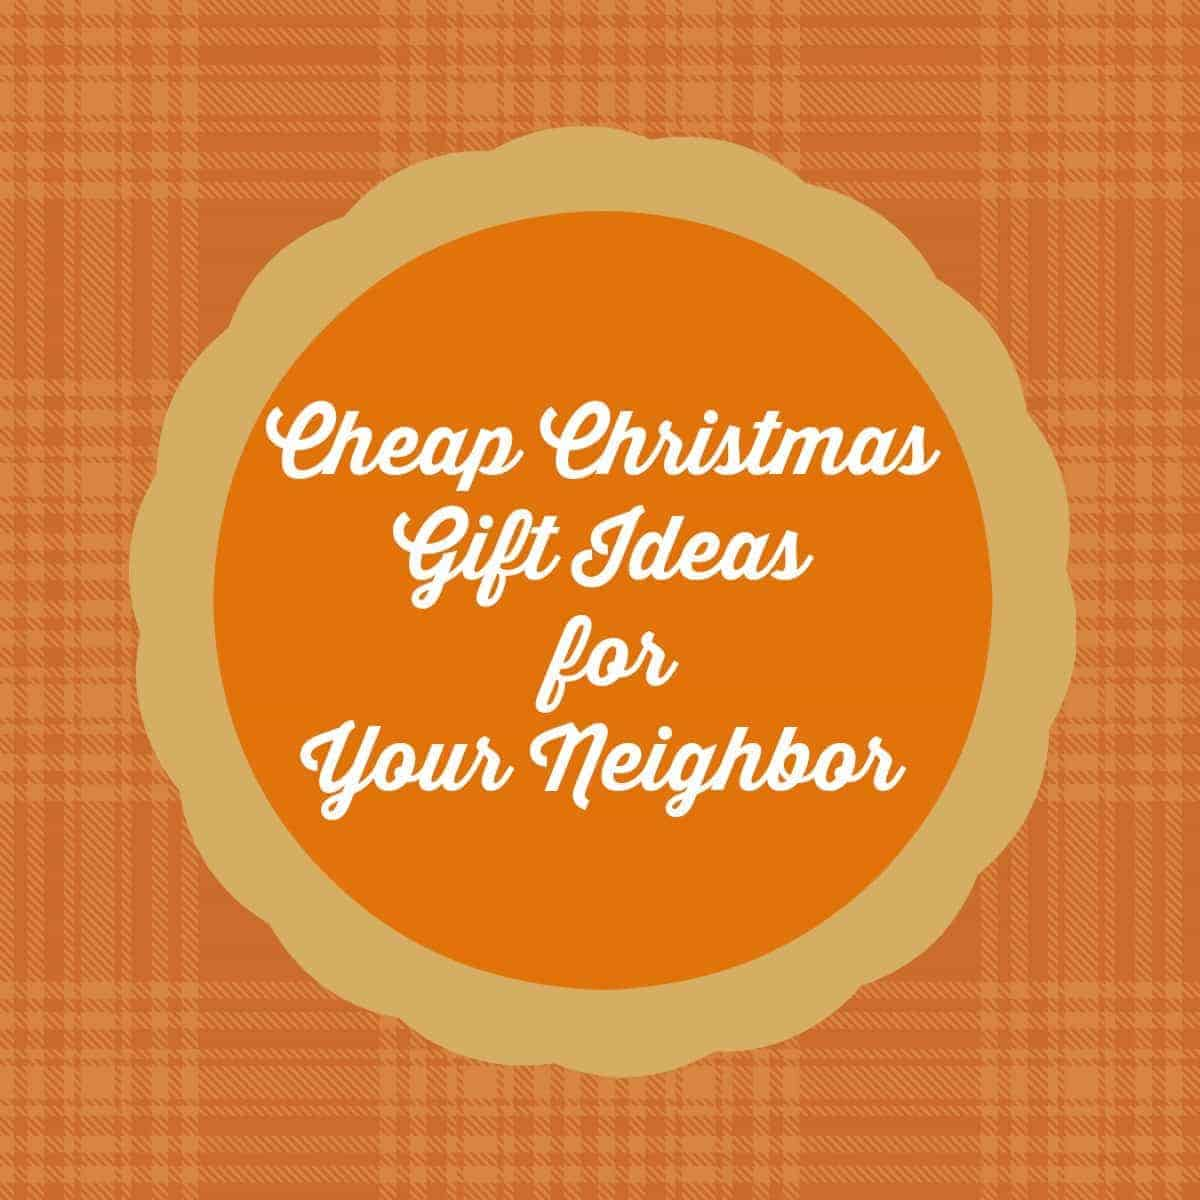 Cheap Christmas Gift Ideas for Your Neighbor